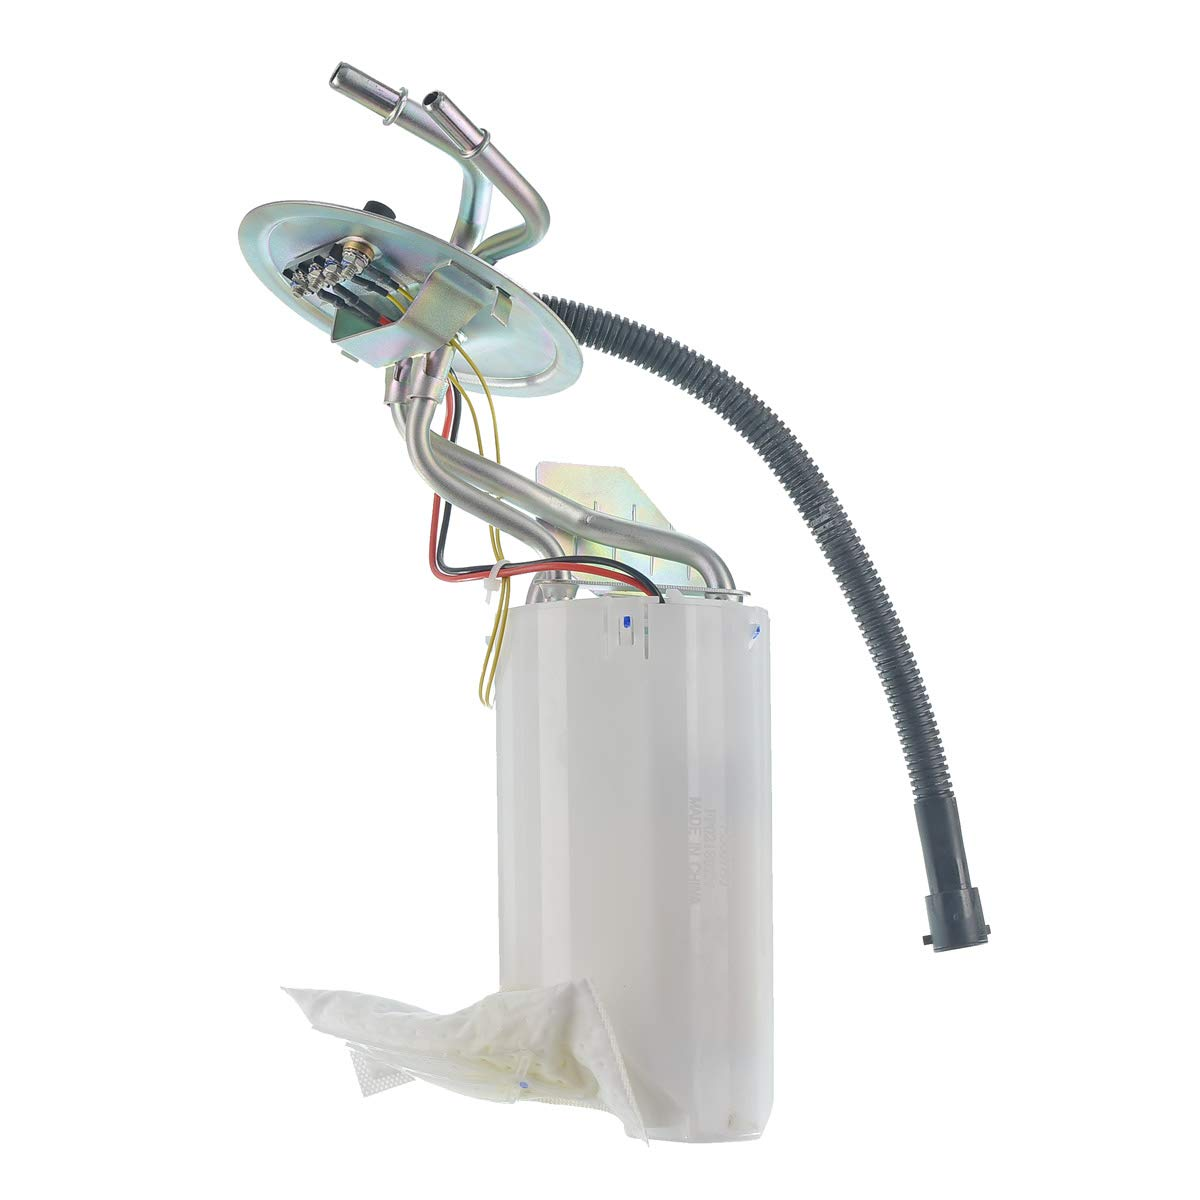 amazon com: fuel pump assembly for ford f-150 f-250 f-350 1990-1997 f super  duty f53 with 18 gallon steel tank: automotive